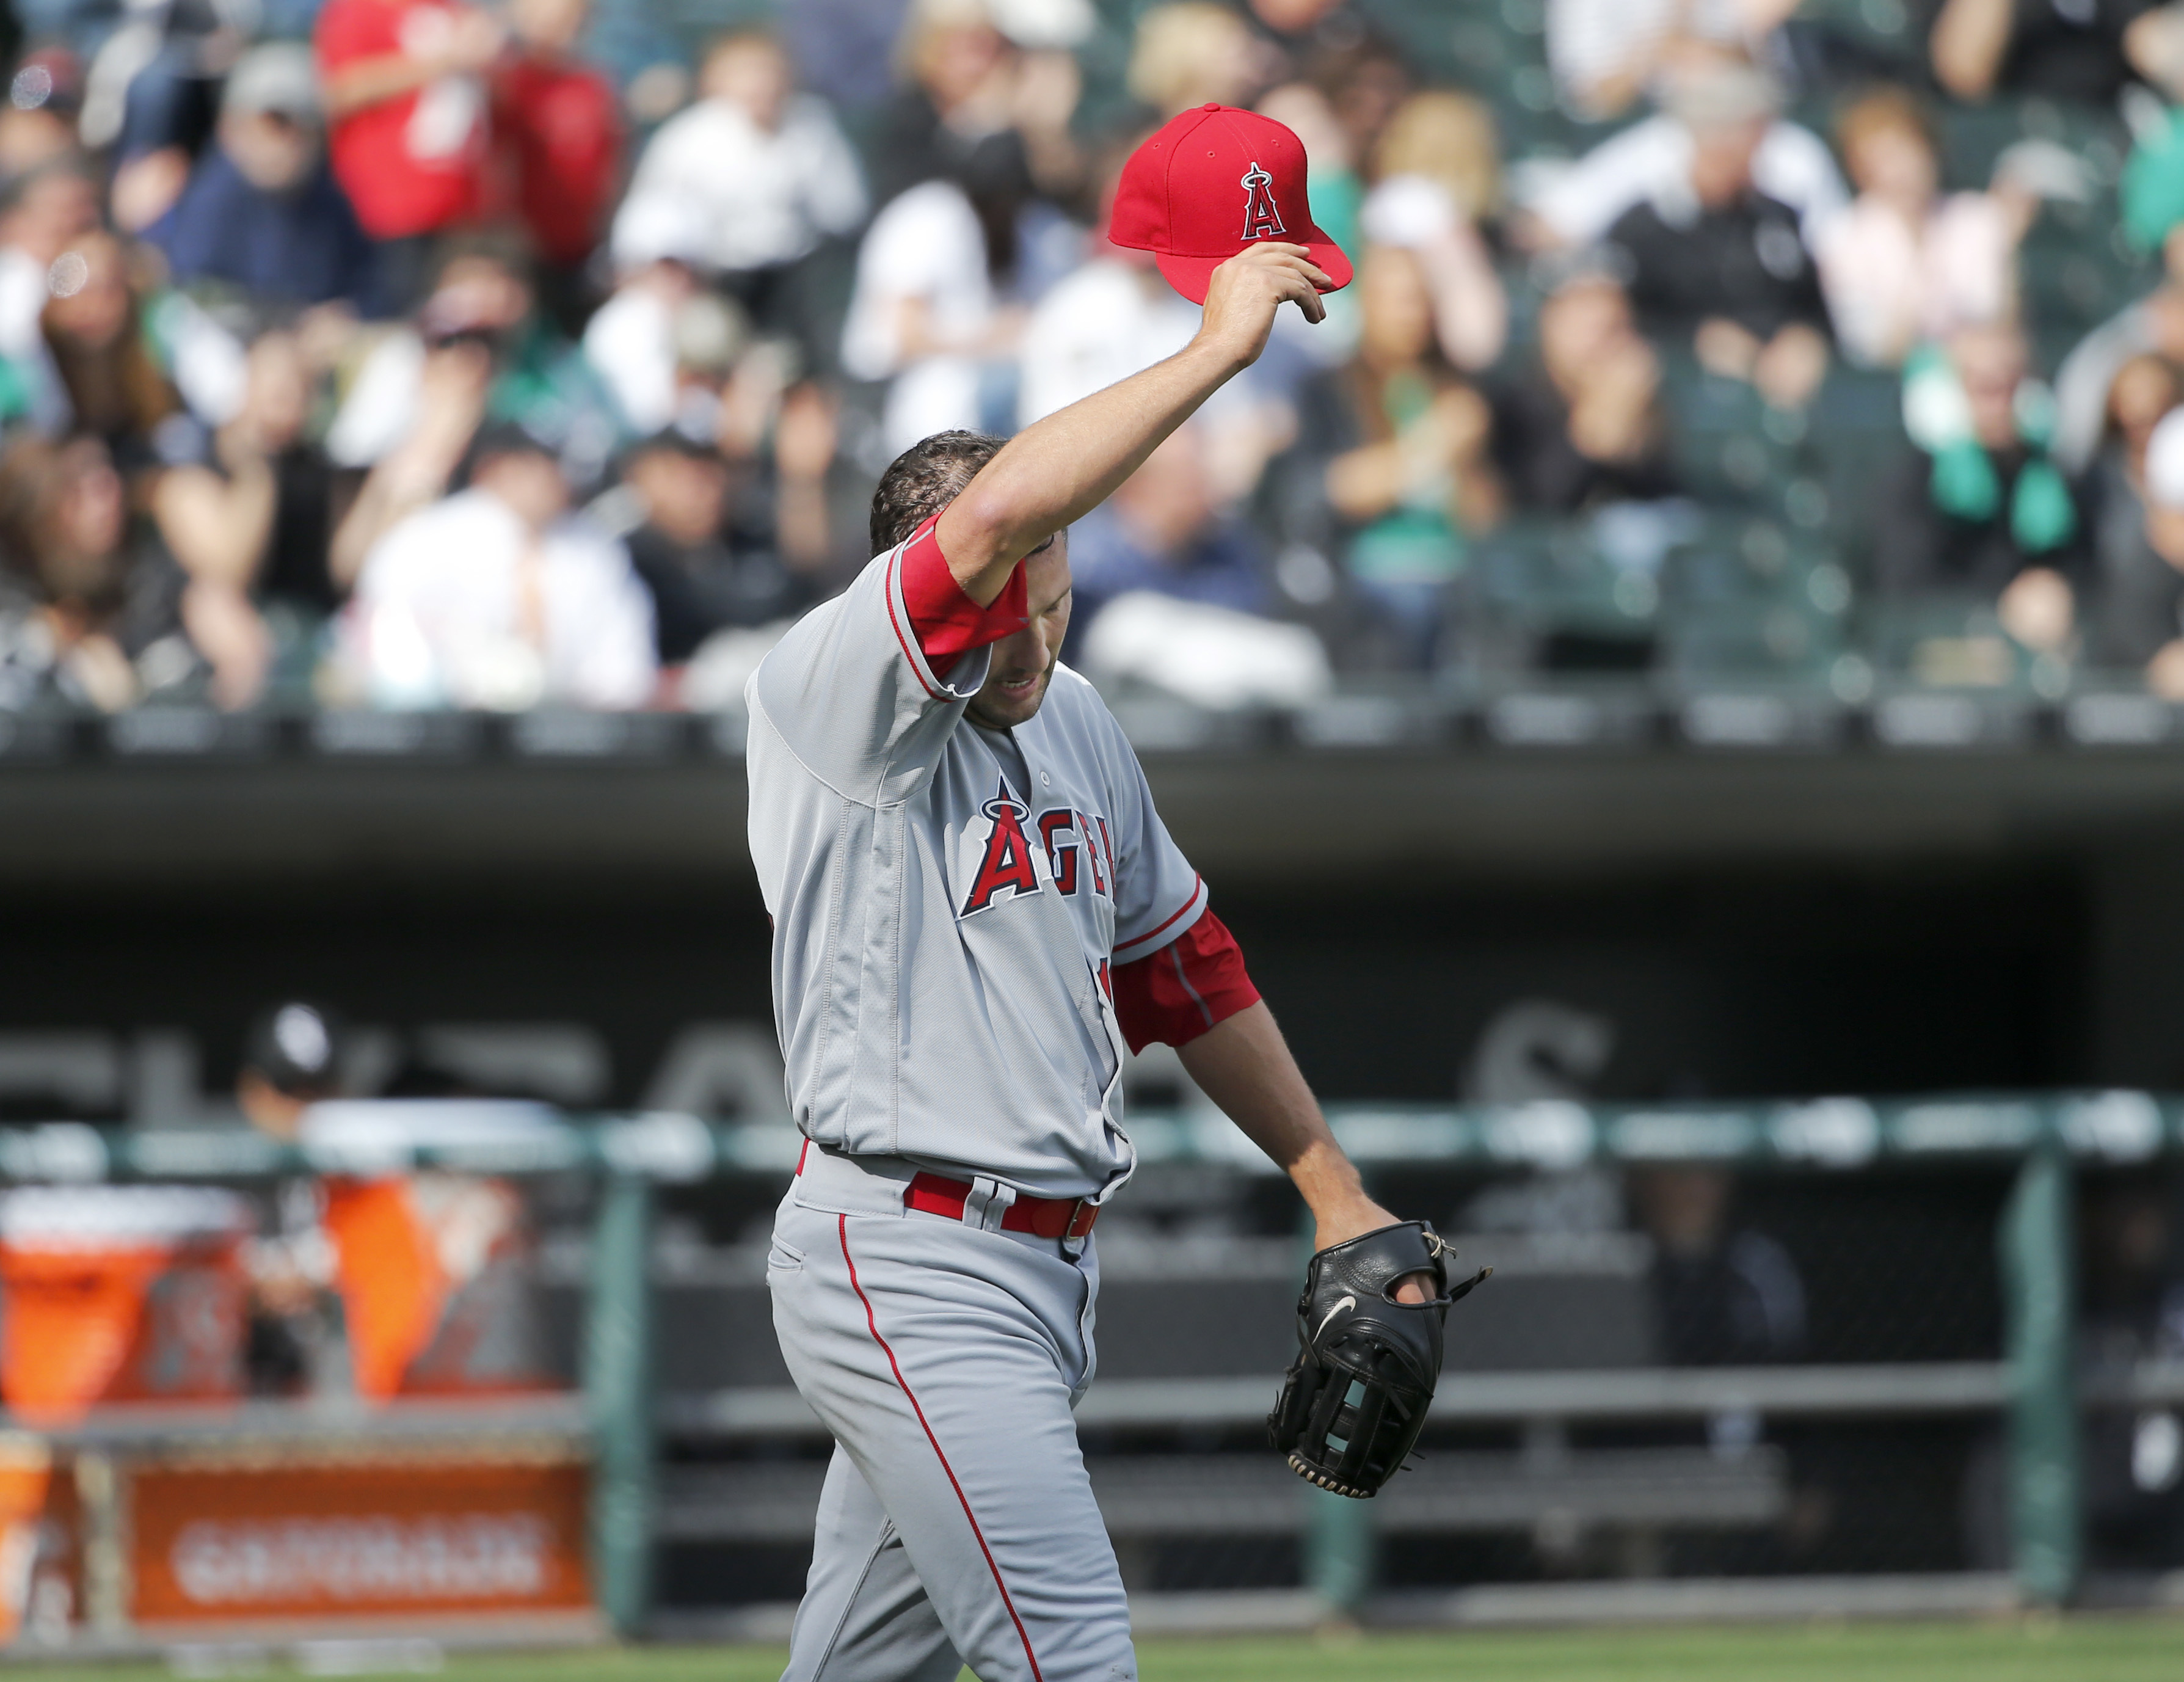 Los Angeles Angels relief pitcher Huston Street wipes his face as he get into a jam during the ninth inning of a baseball game against the Chicago White Sox, Thursday, April 21, 2016, in Chicago. Street recovered and the Angels won 3-2. (AP Photo/Charles